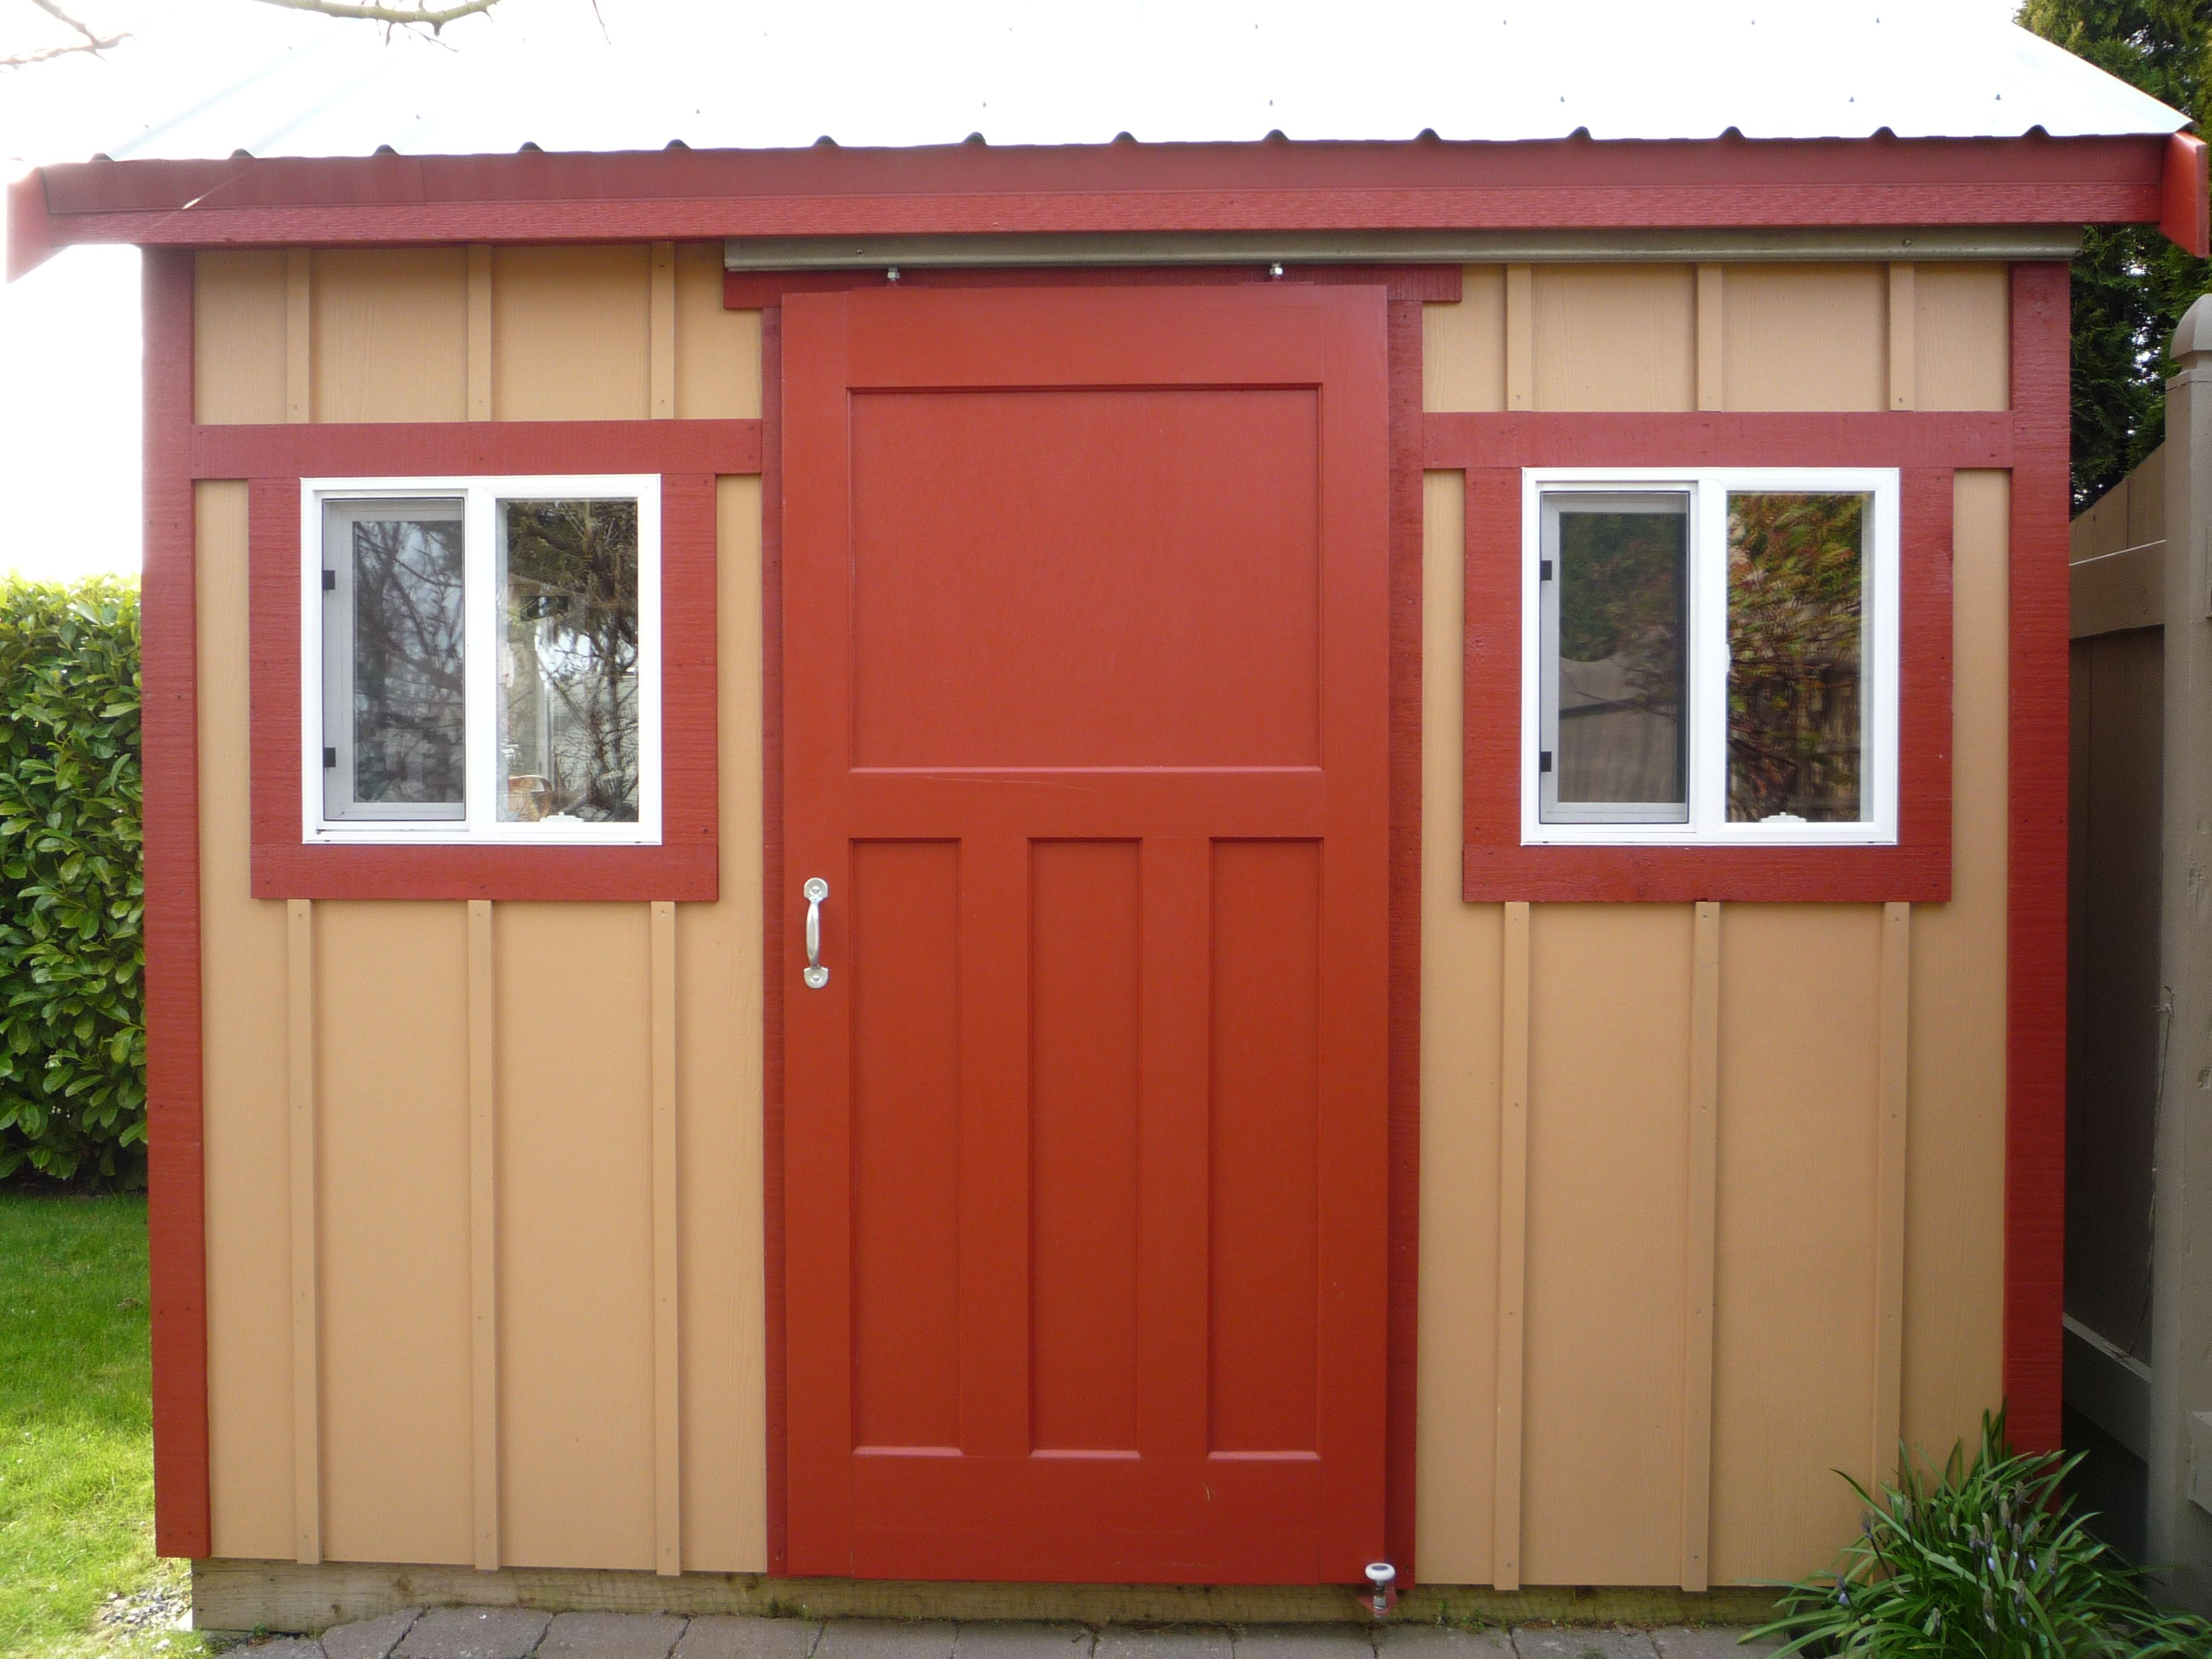 red and white barn doors. Ideas, Adorable Red Exterior Sliding Barn Doors In Brown Design With White Window Decor Ideas: Attractive Ide. And